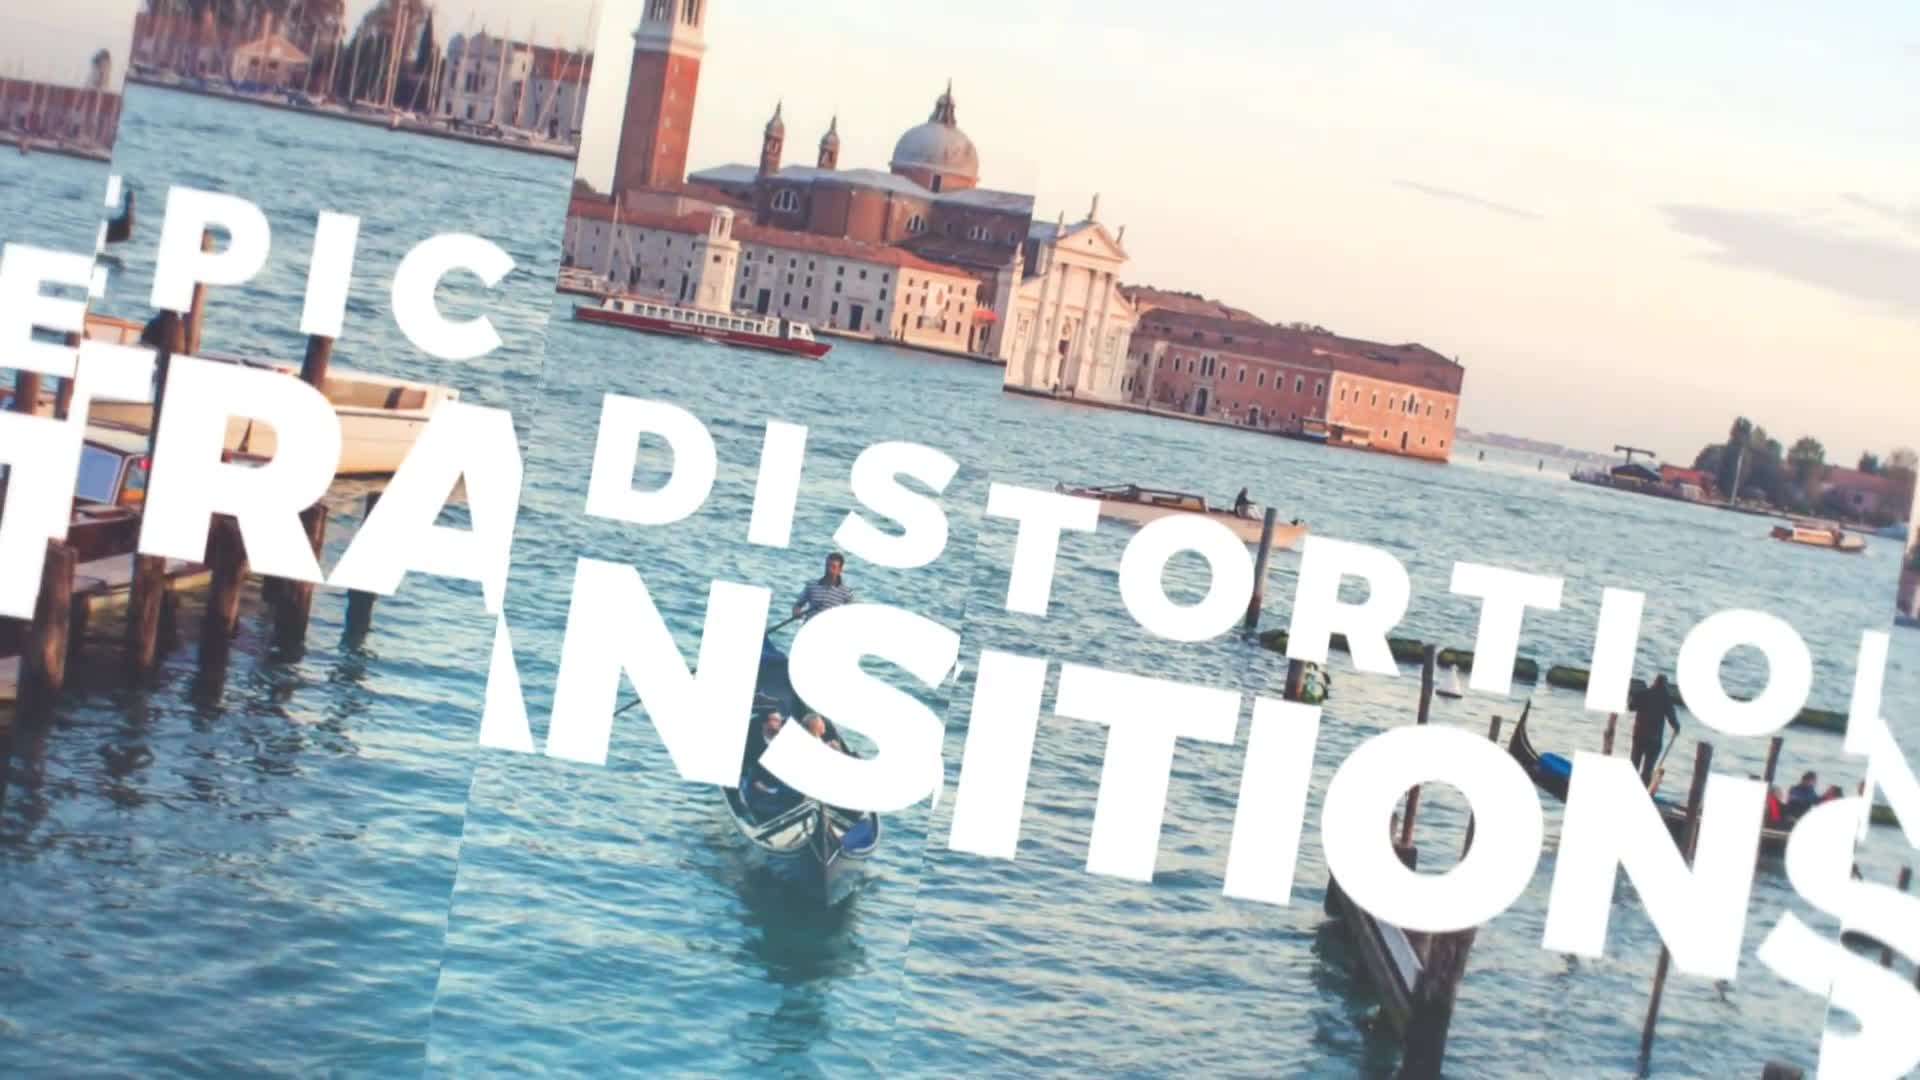 Epic Distortion Transitions - Download Videohive 20553807